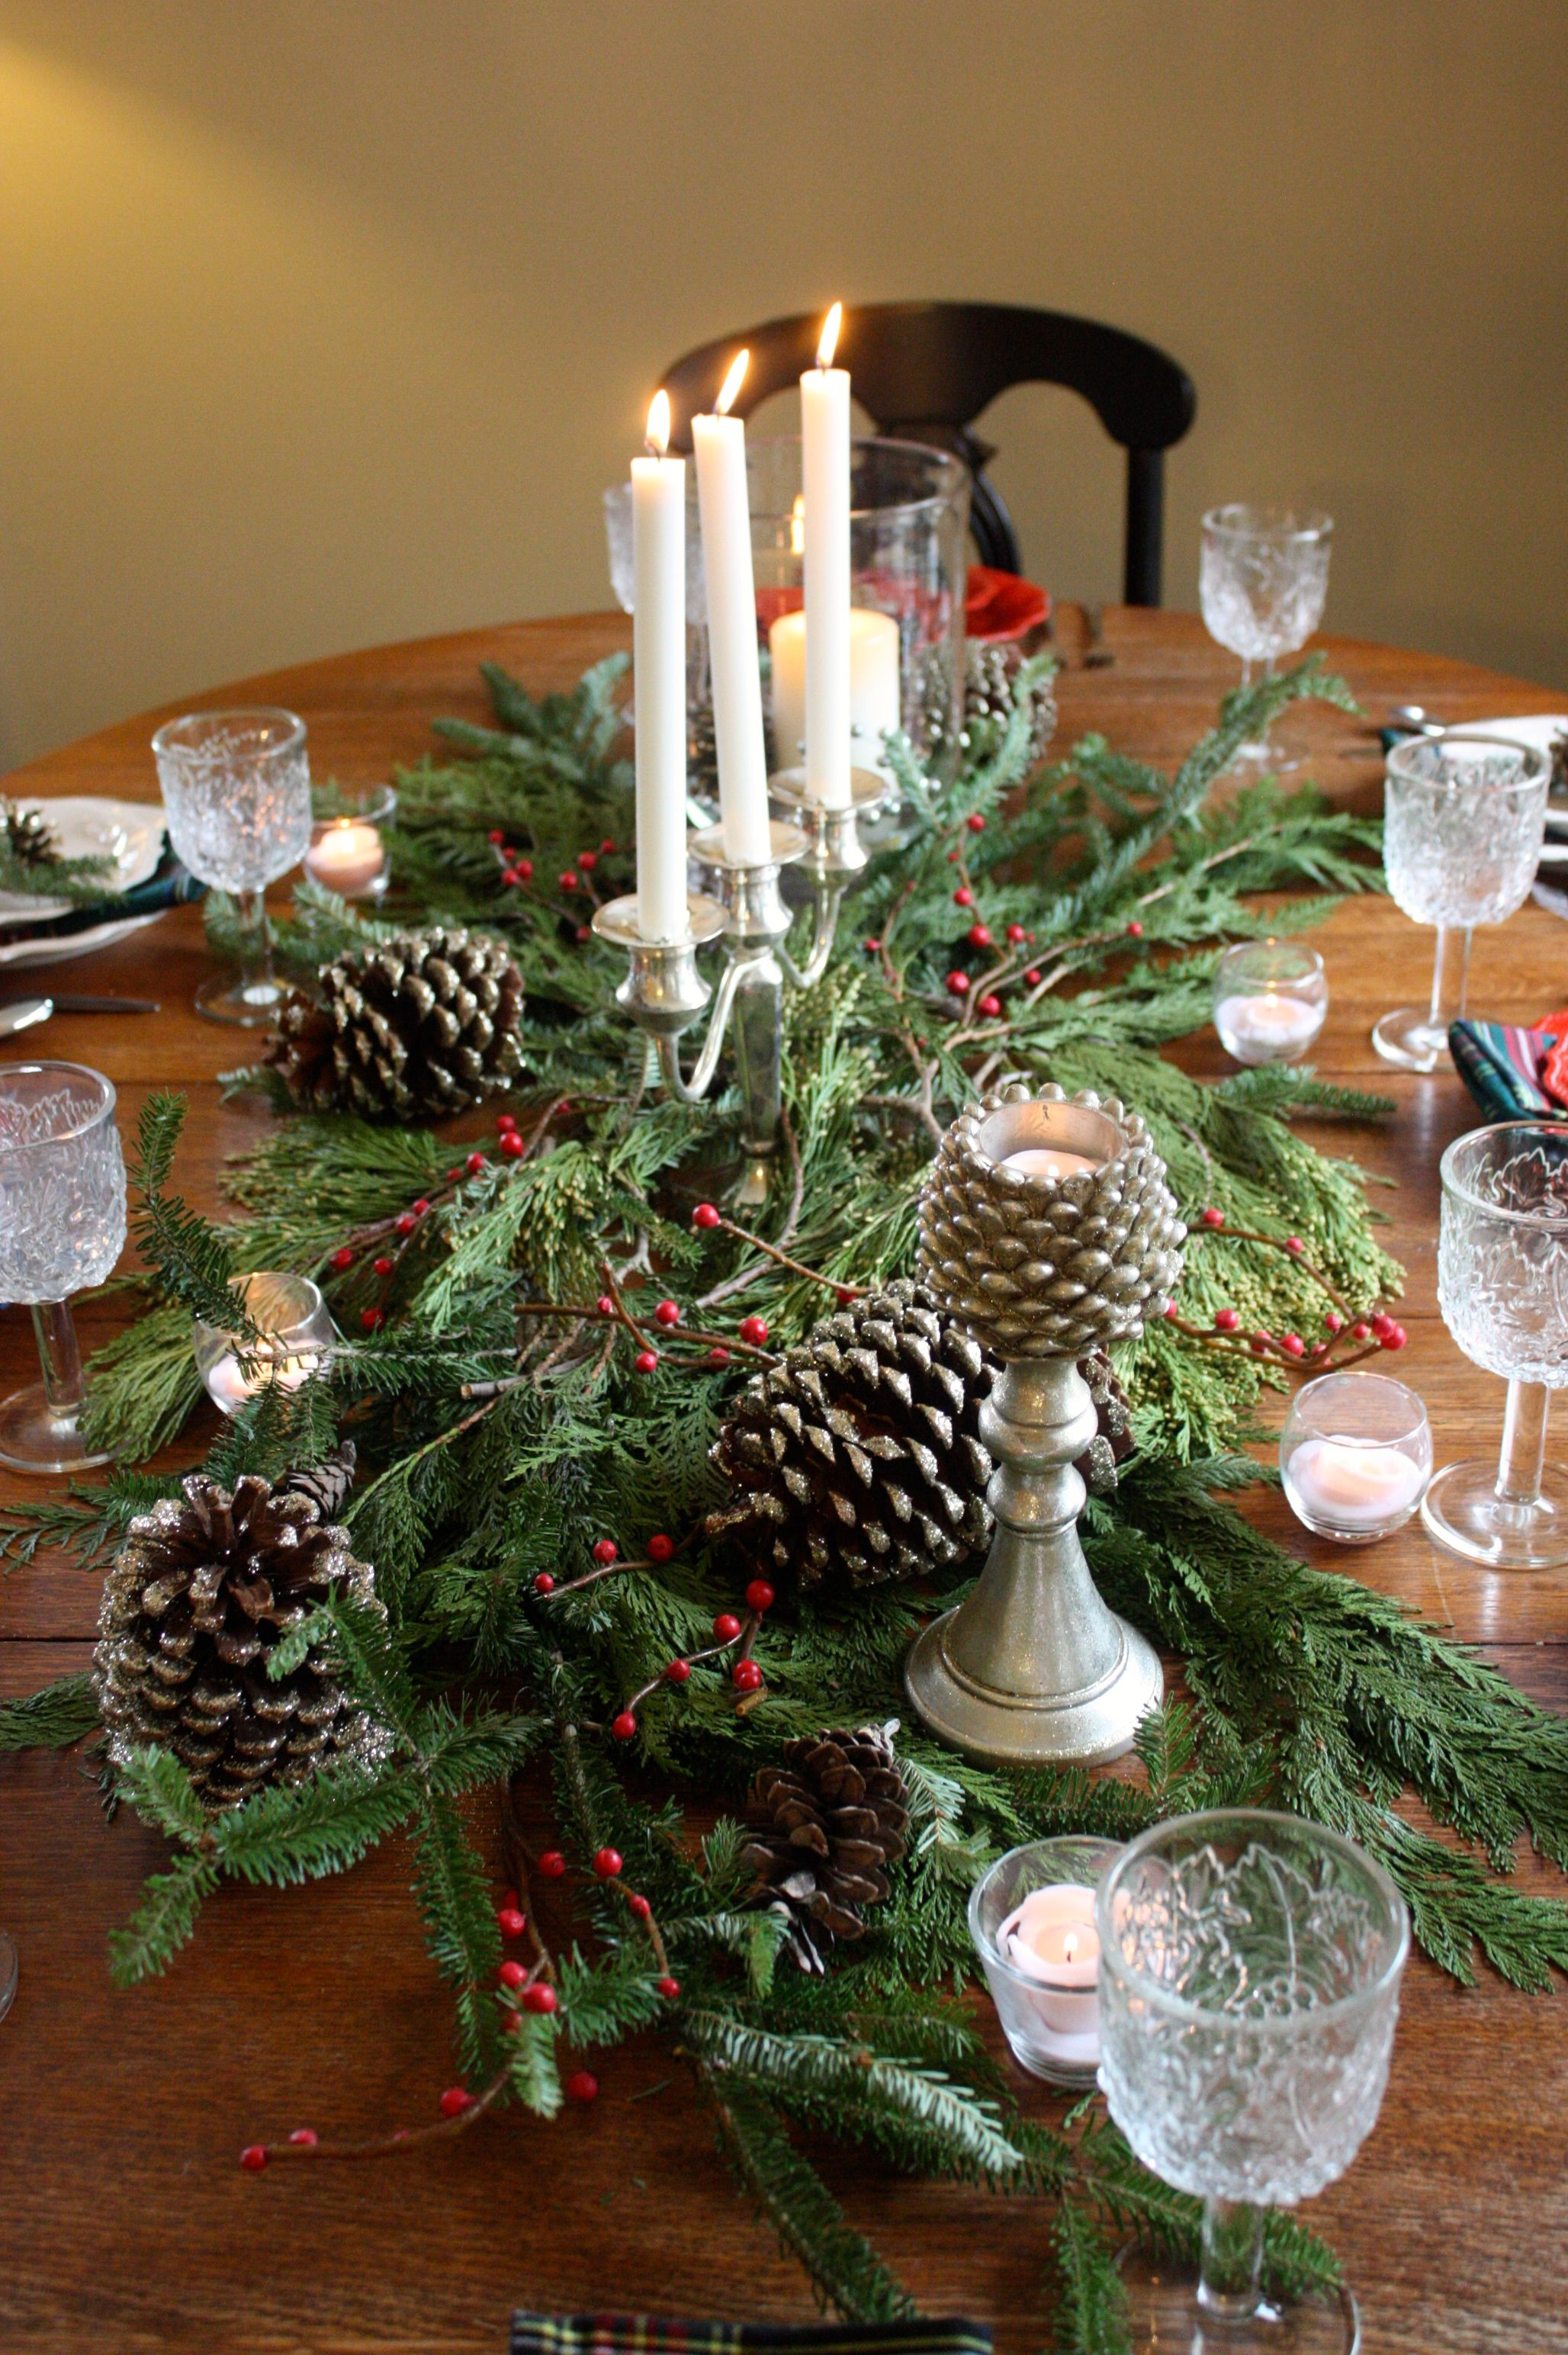 I Love Creating Simple Holiday Tablescape With Fresh Greens Pineconses Berries And Can Christmas Table Centerpieces Holiday Tablescapes Christmas Decorations